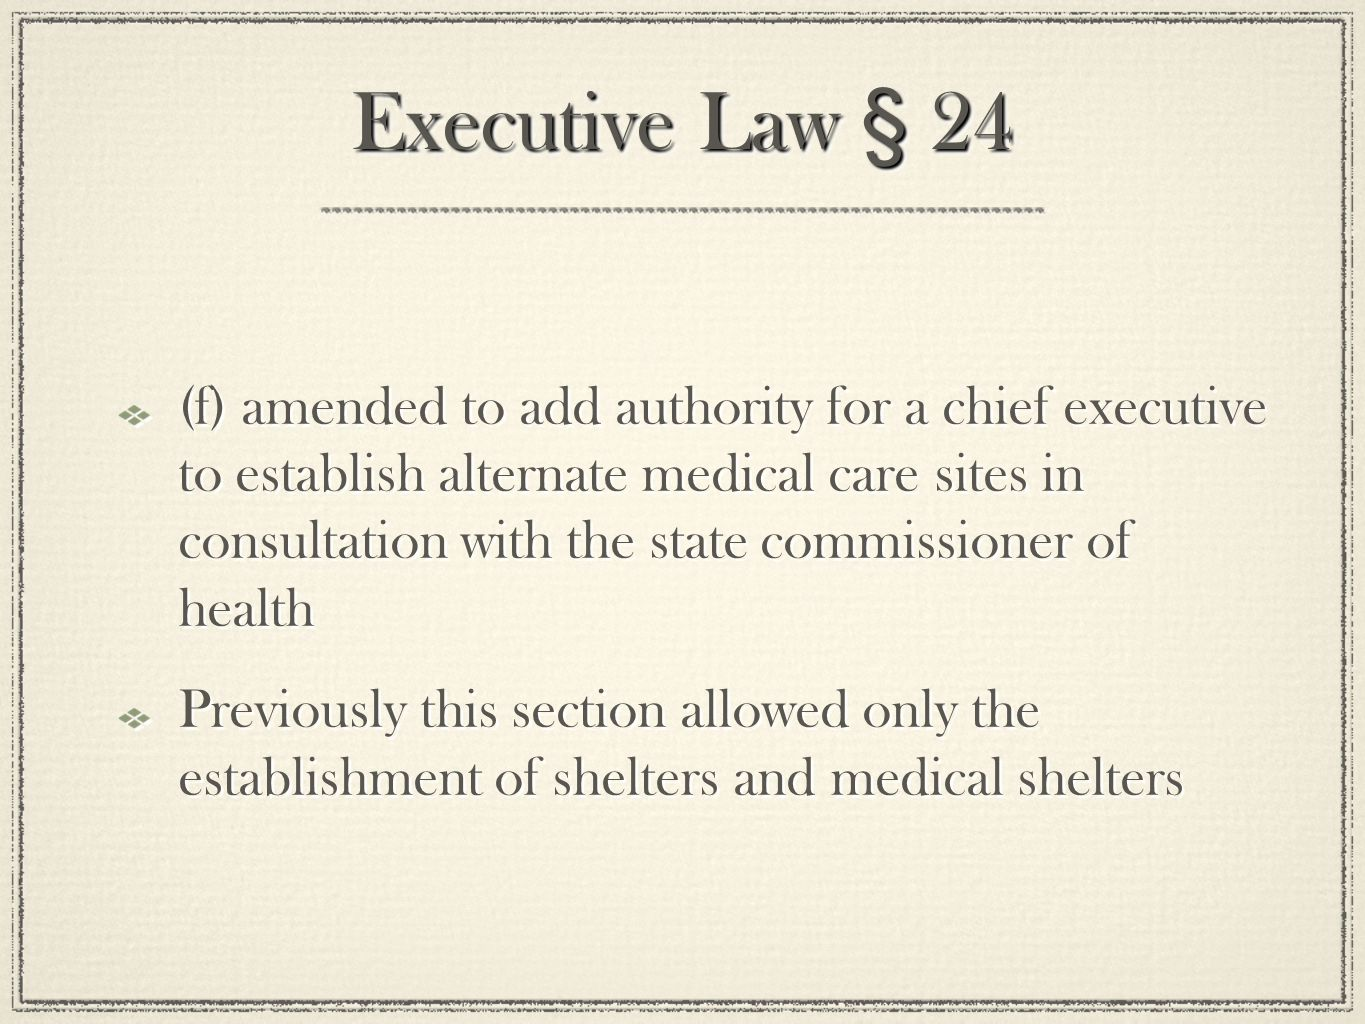 Executive Law § 24 (f) amended to add authority for a chief executive to establish alternate medical care sites in consultation with the state commissioner of health Previously this section allowed only the establishment of shelters and medical shelters (f) amended to add authority for a chief executive to establish alternate medical care sites in consultation with the state commissioner of health Previously this section allowed only the establishment of shelters and medical shelters